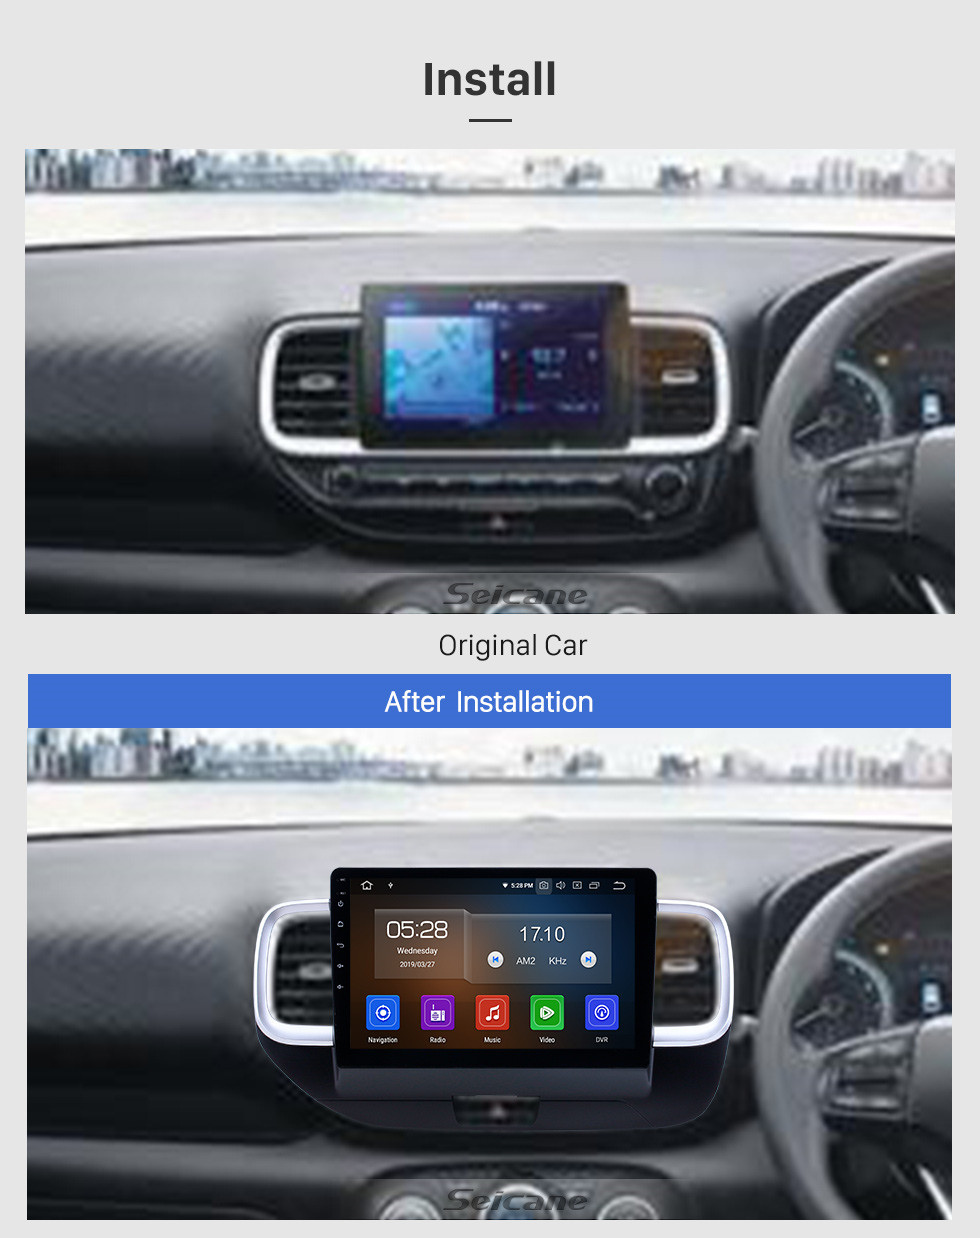 Seicane 10.1 pulgadas 2019 Hyundai Venue RHD Android 10.0 Radio de navegación GPS Bluetooth HD Pantalla táctil Carplay support Mirror Link